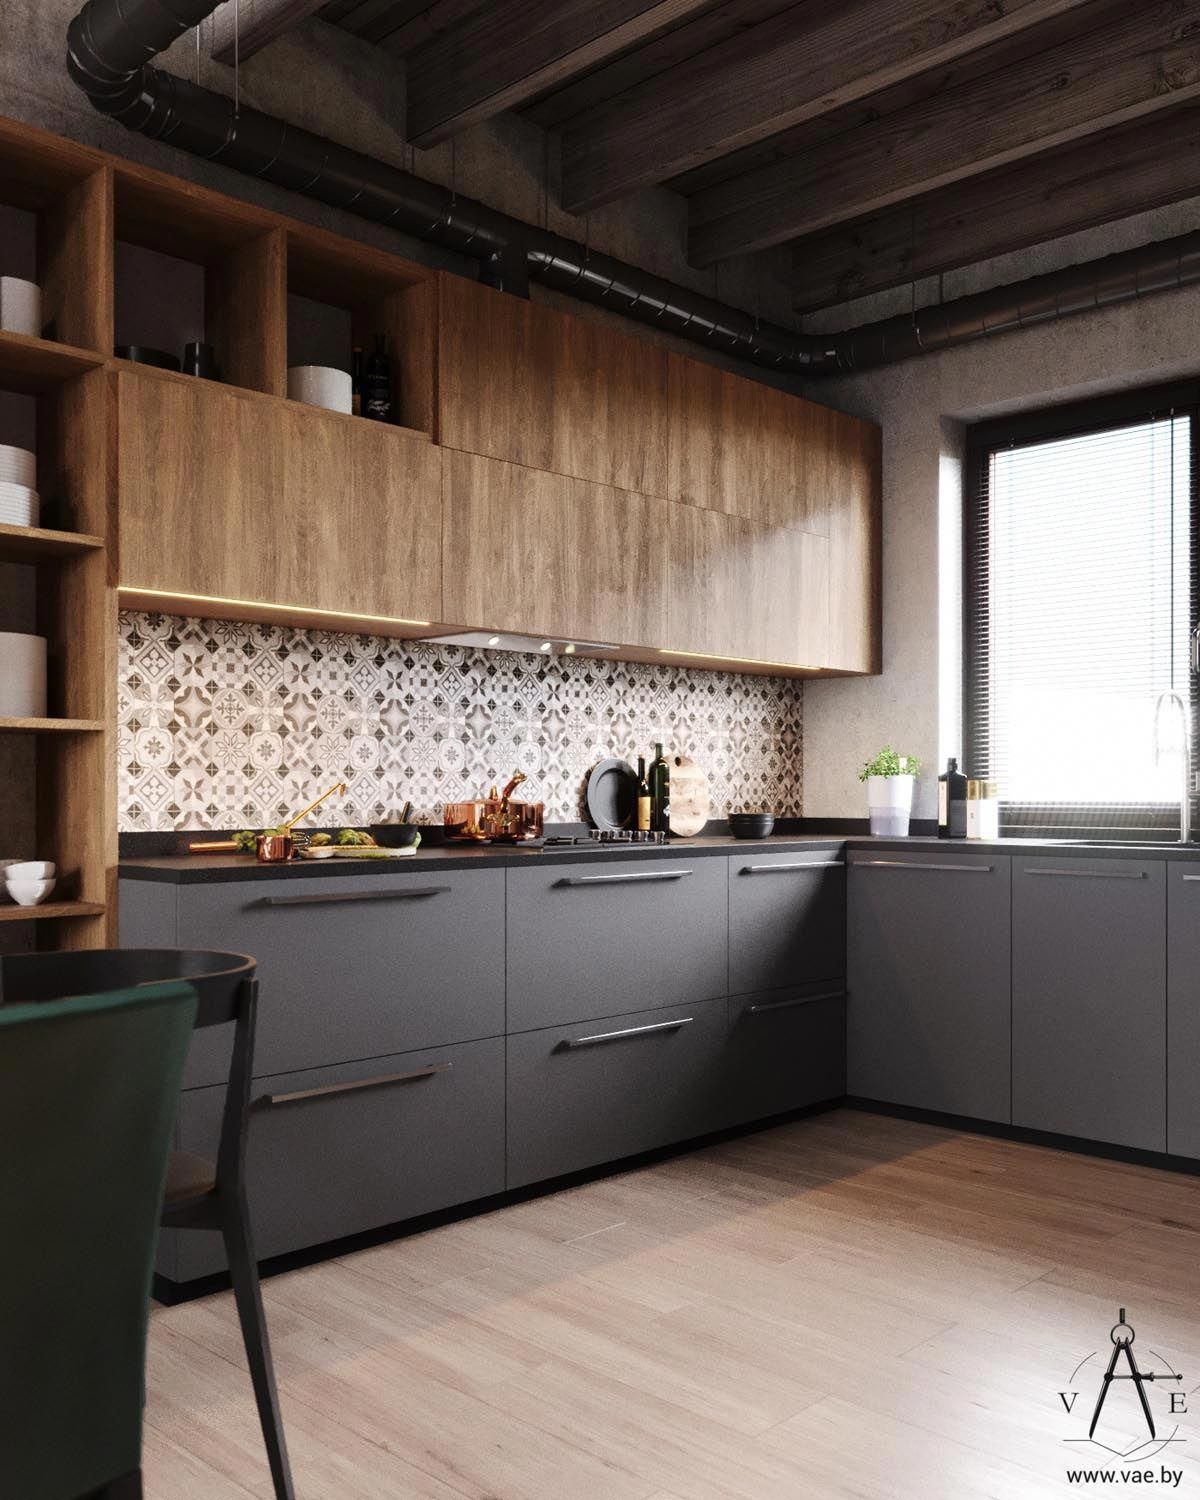 Photo of Calda casa in stile industriale (con layout)